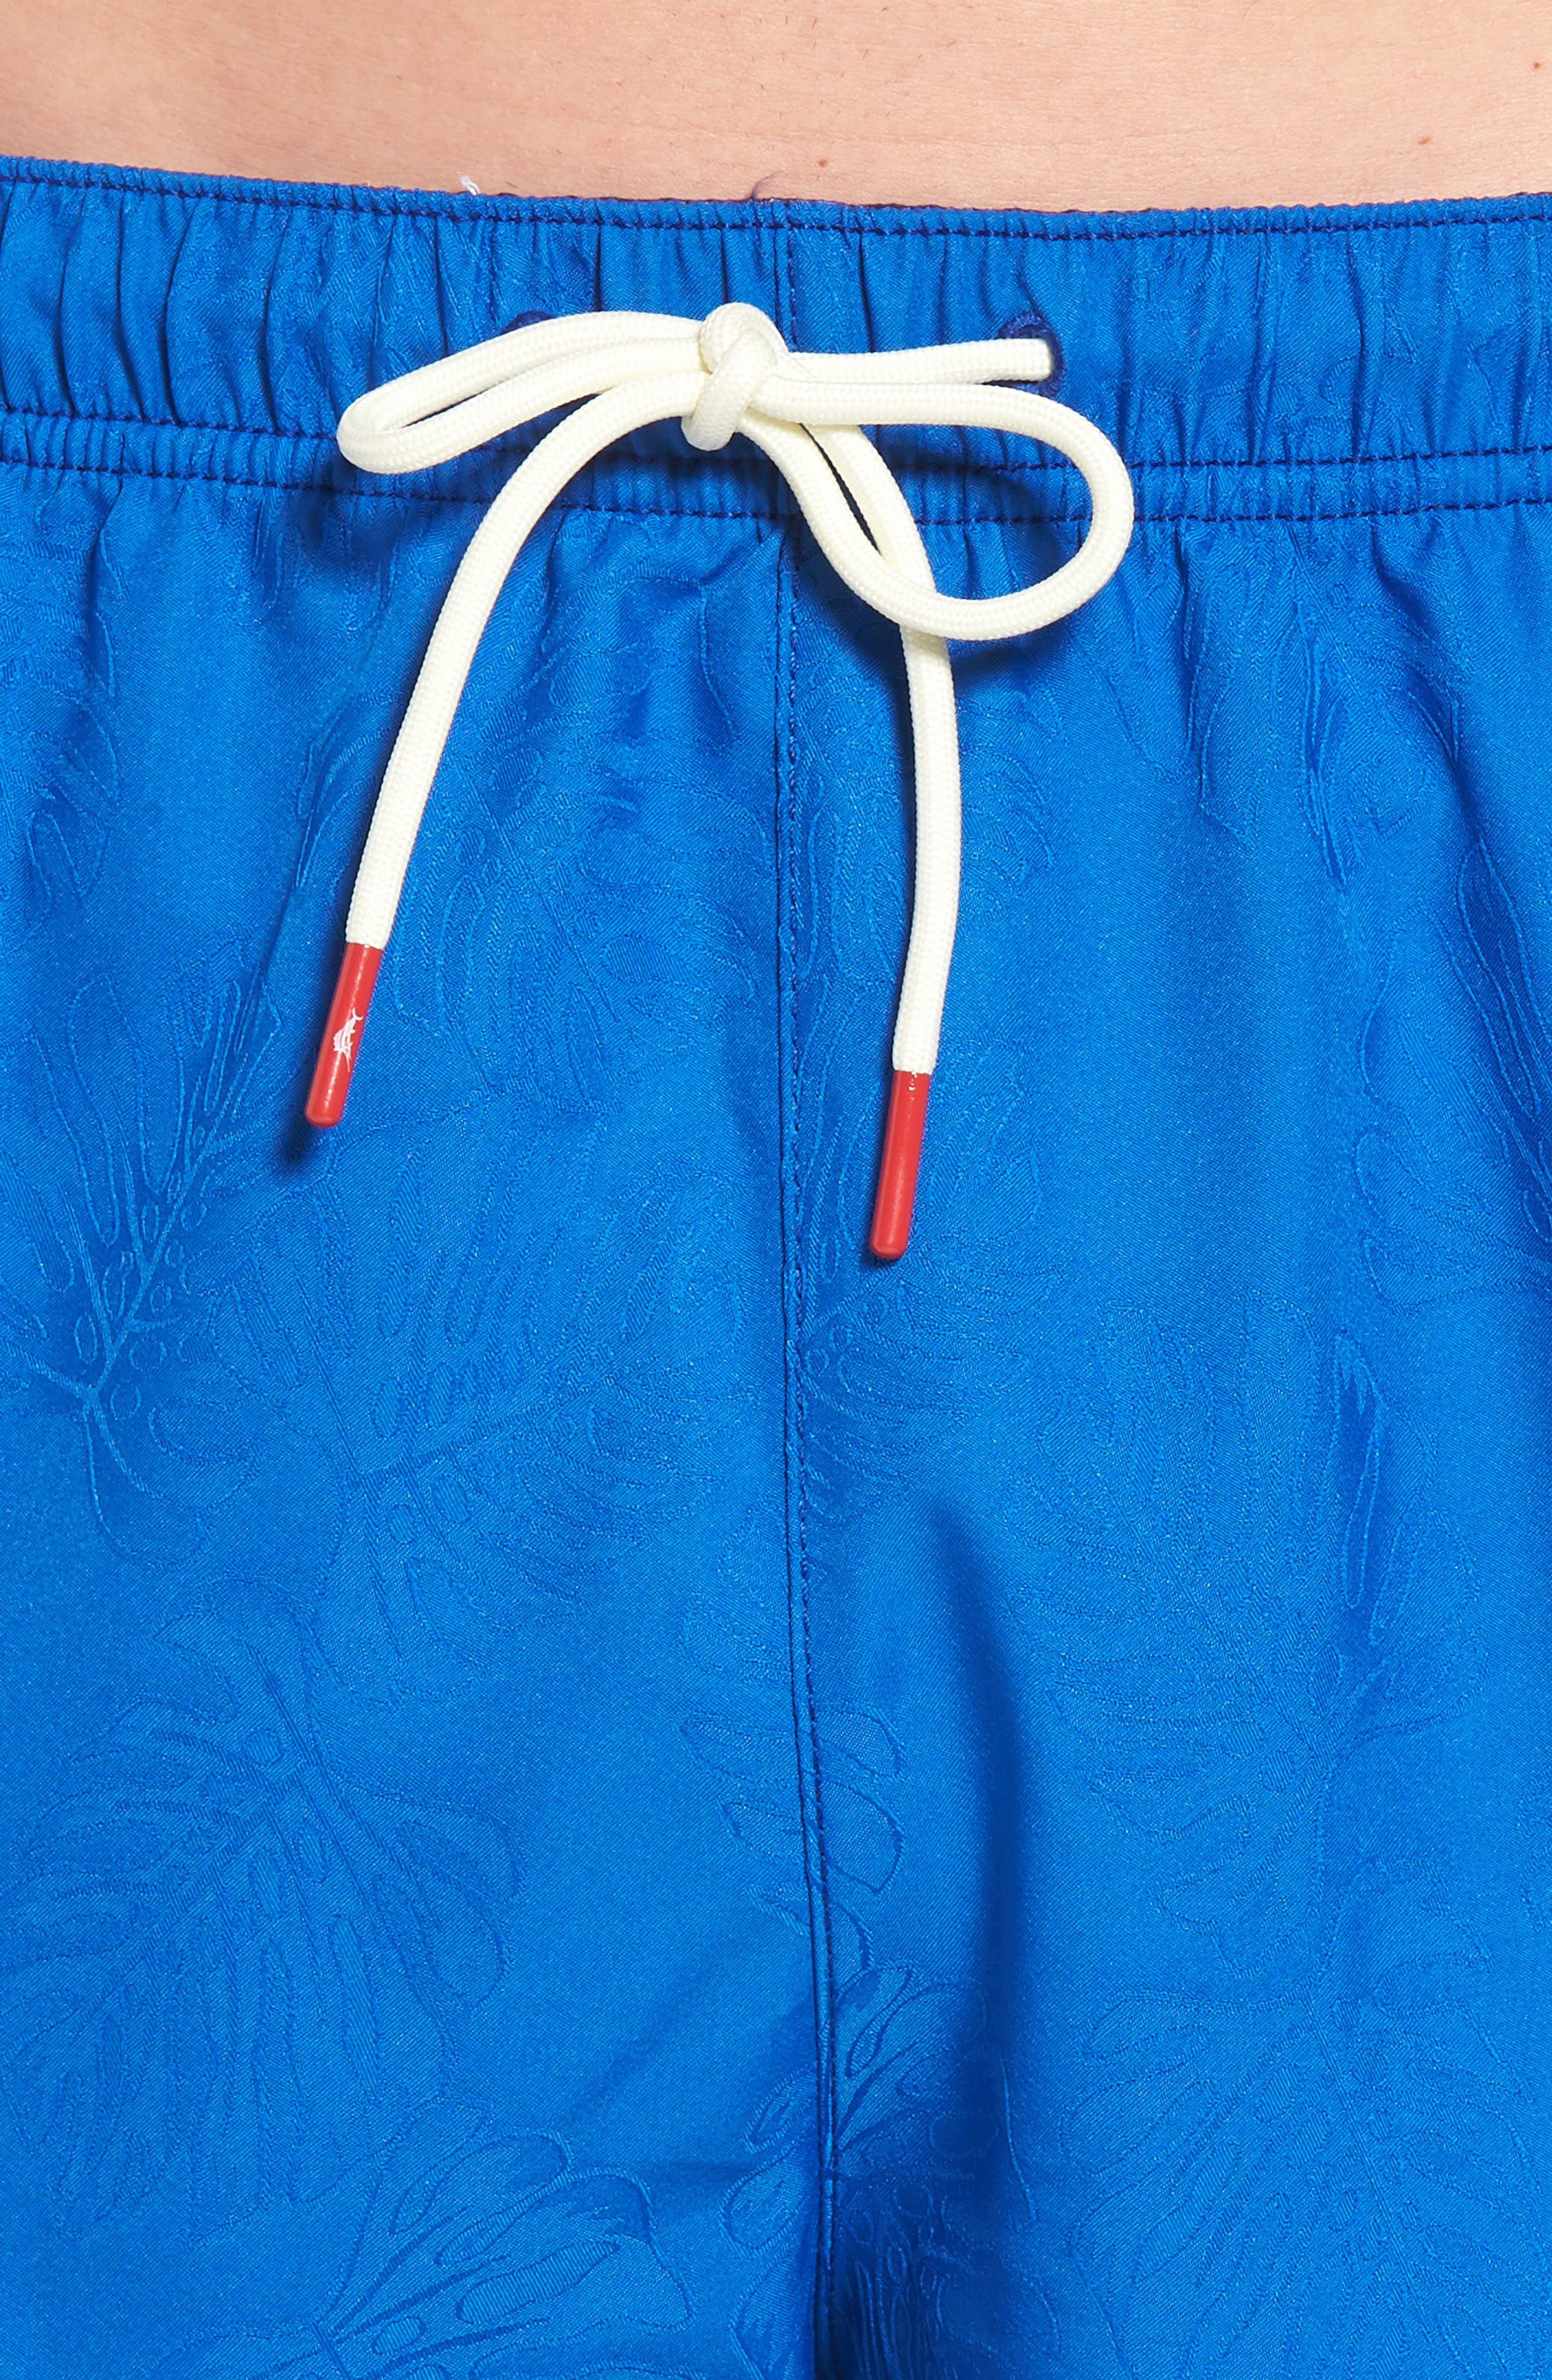 Naples Midnight Monstera Swim Trunks,                             Alternate thumbnail 4, color,                             Cobalt Sea